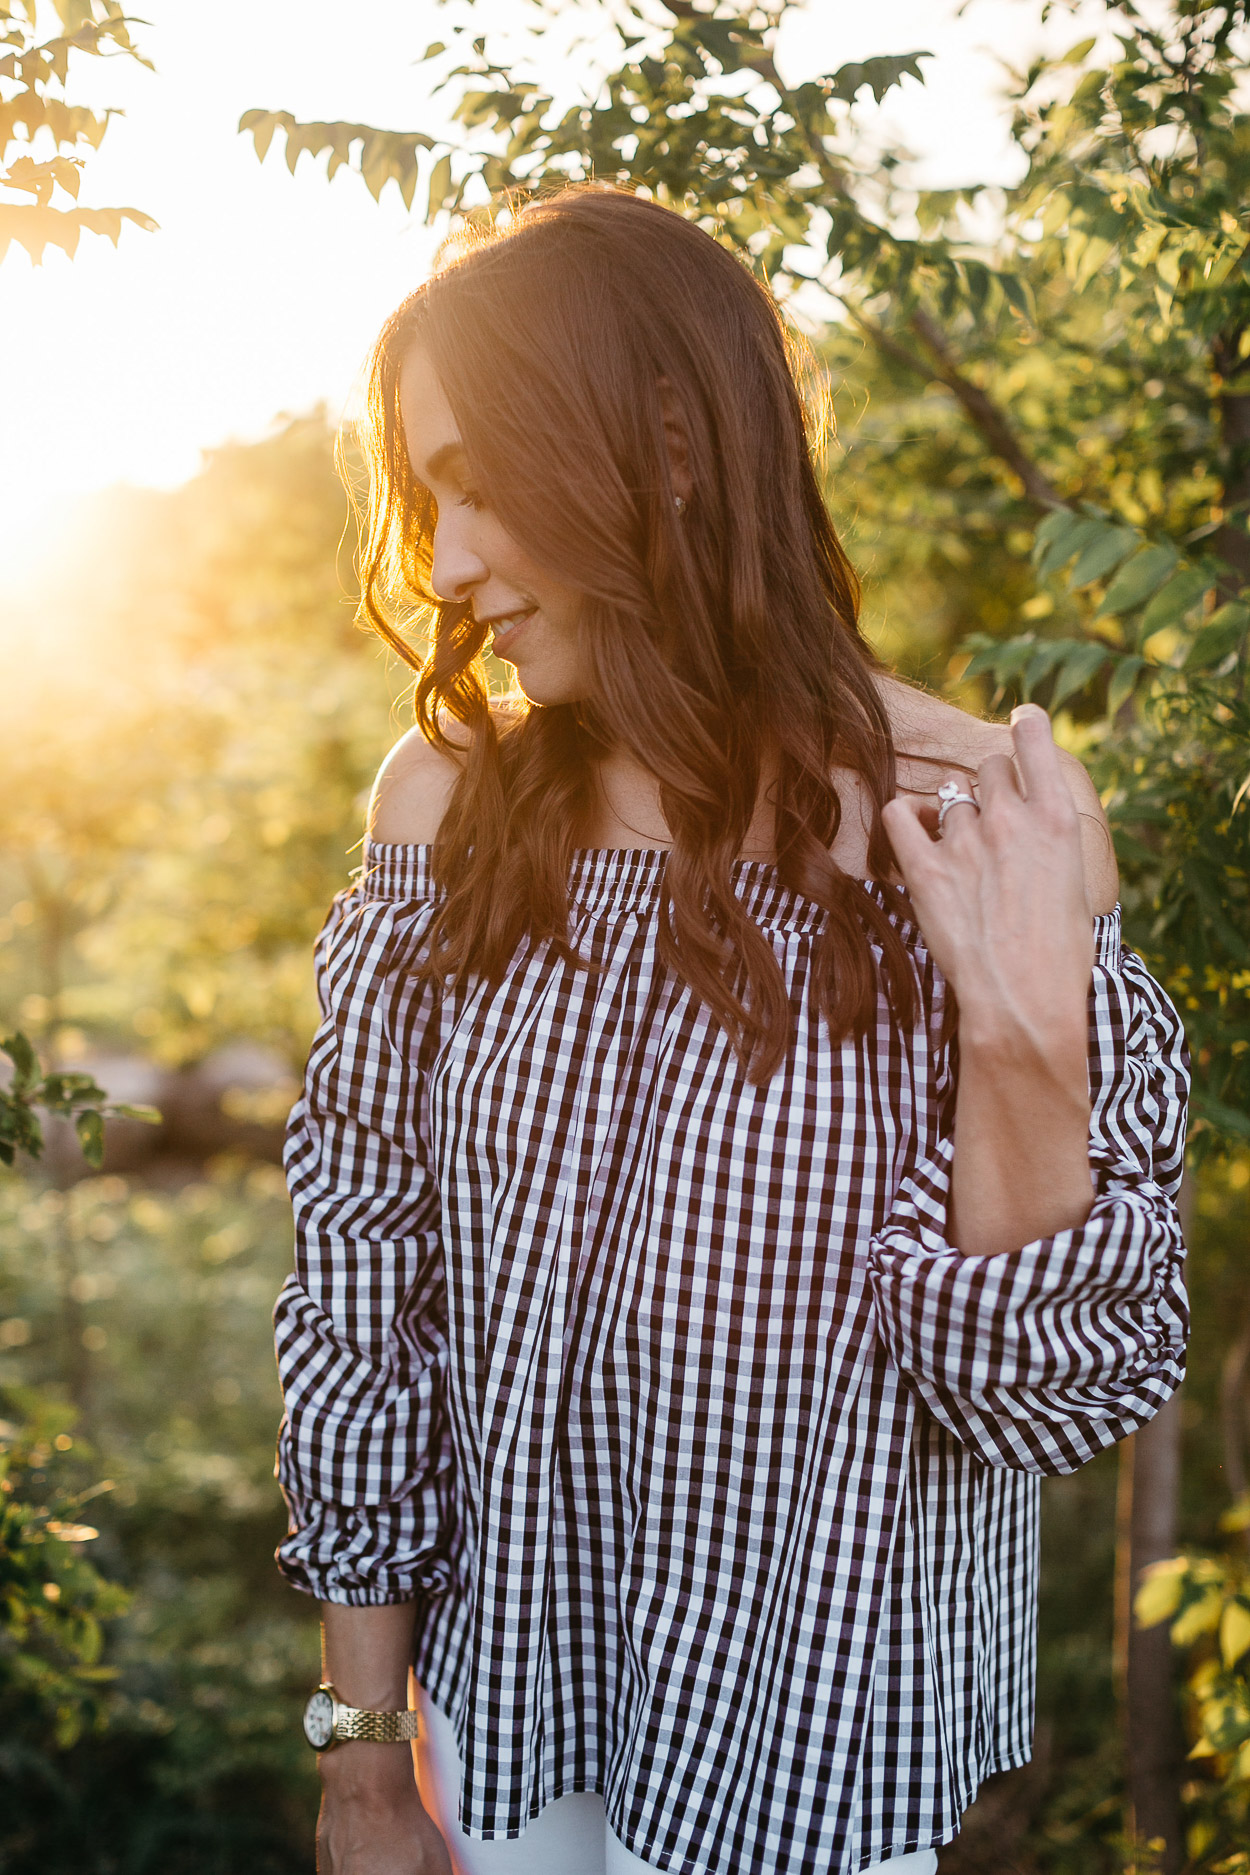 Black and white gingham top by Chicwish is styled at Arbor Hills Nature Preserve by Amanda of A Glam Lifestyle blog